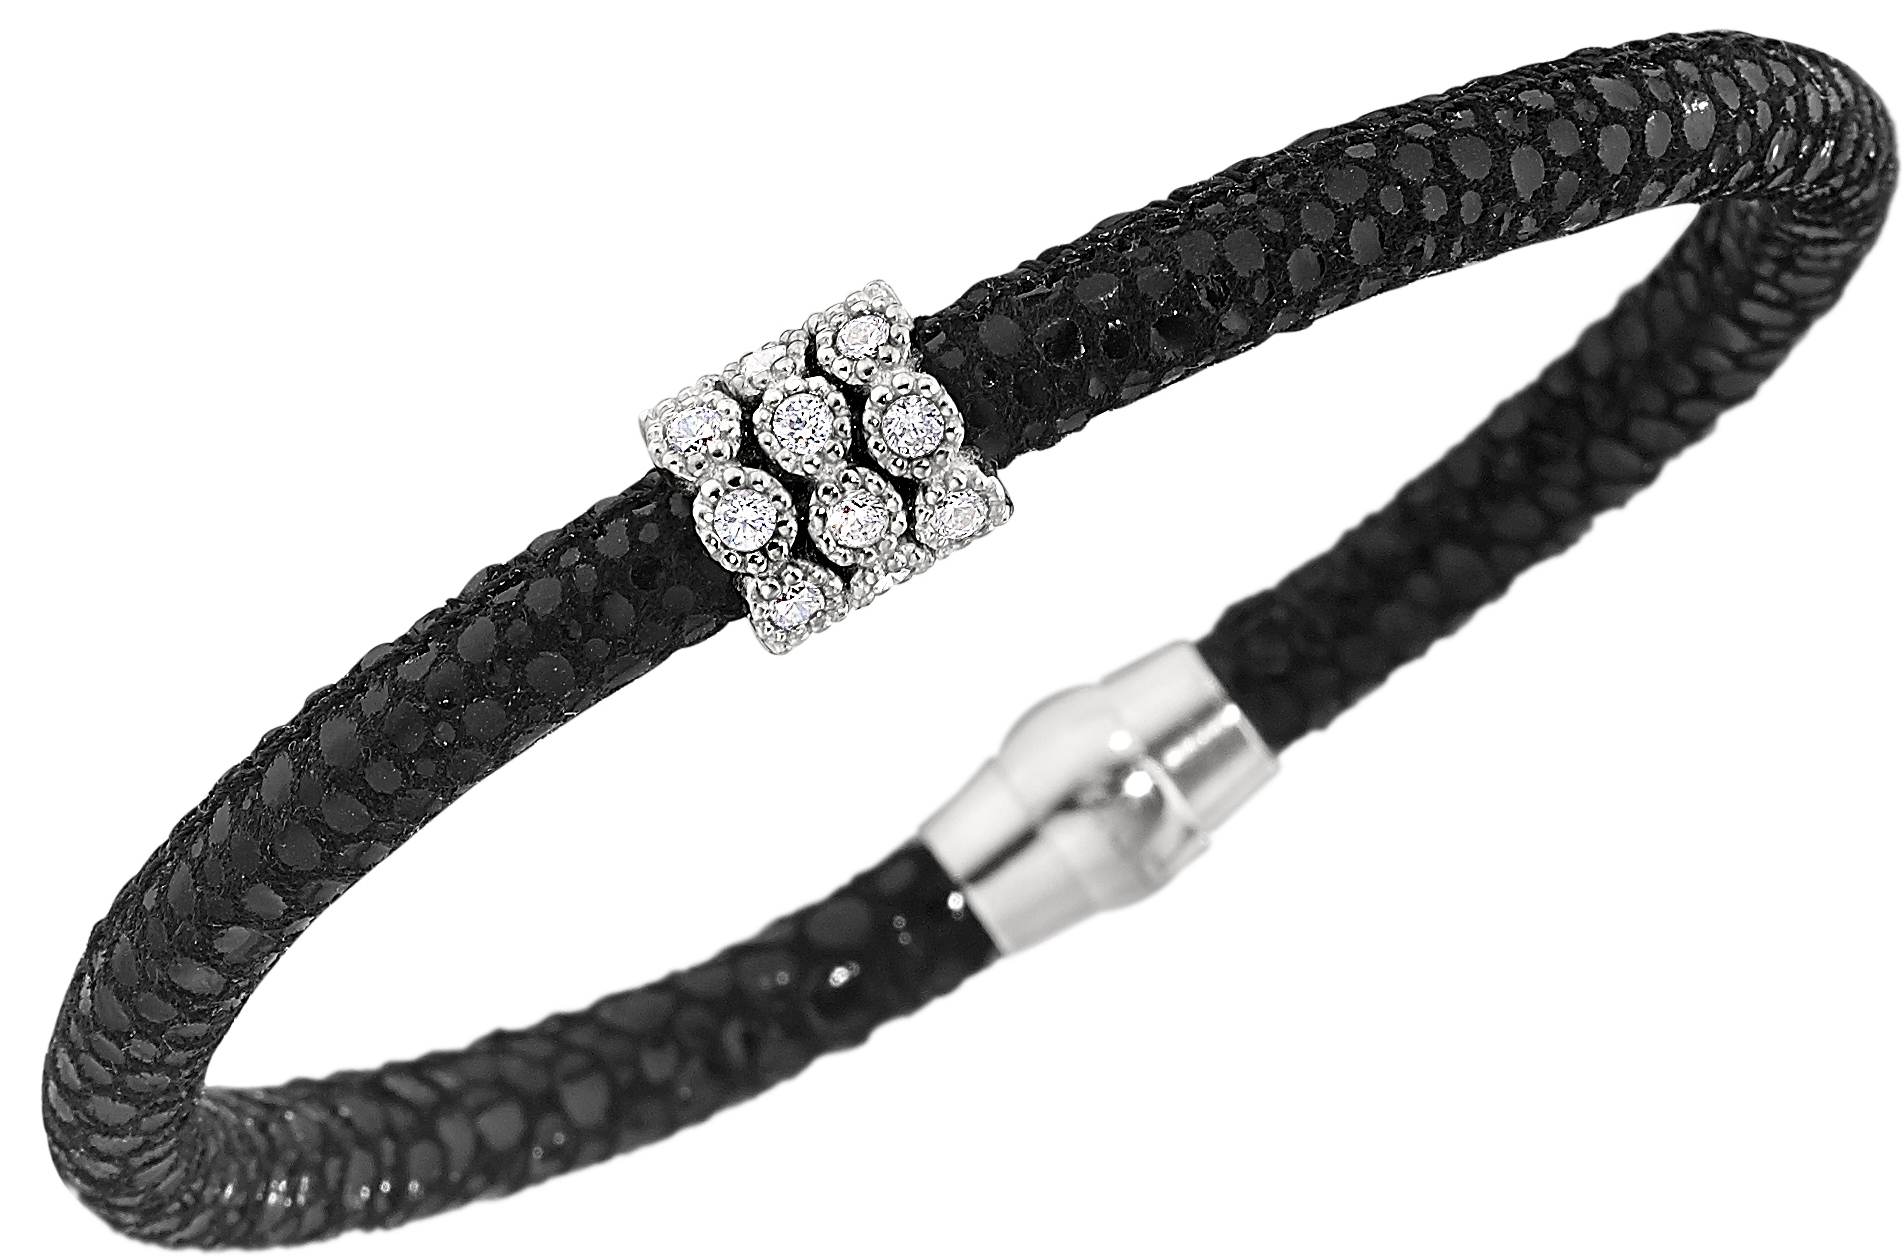 Henderson Collection by Lecil Italian leather bracelet | JCK On Your Market